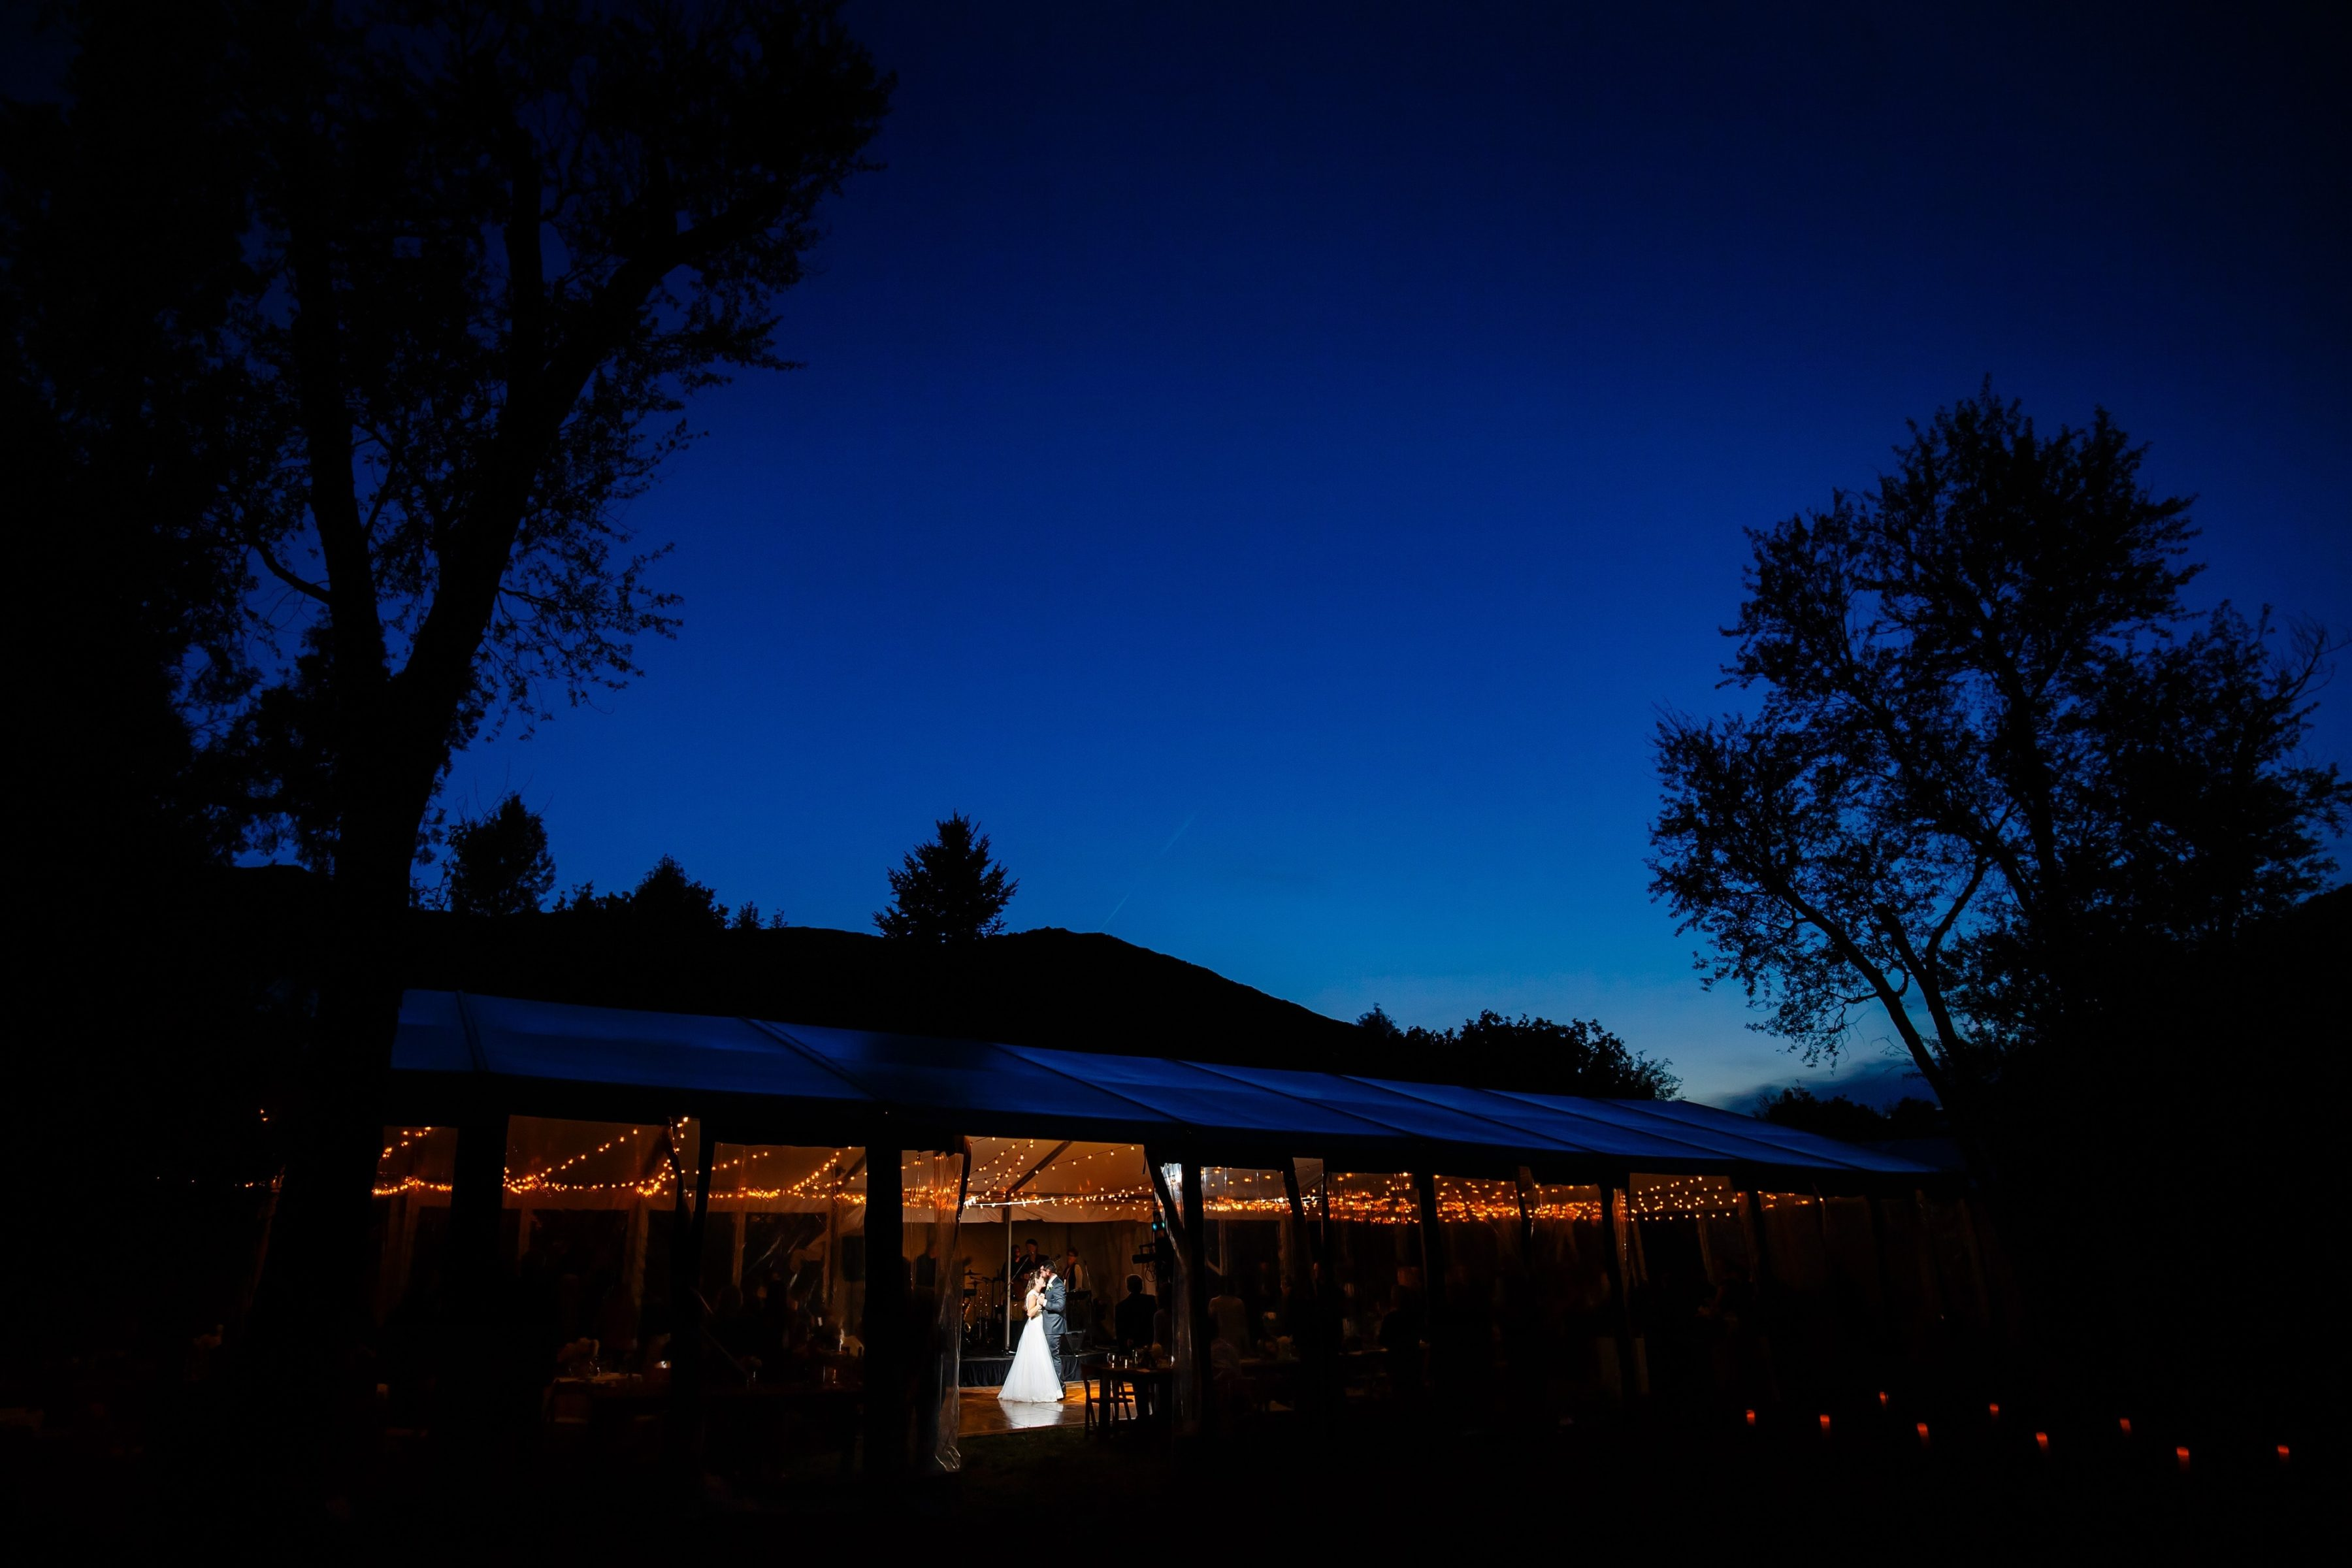 Under a clear sky the couple share their first dance together inside the tent during the reception for their Snowmass Cottages wedding